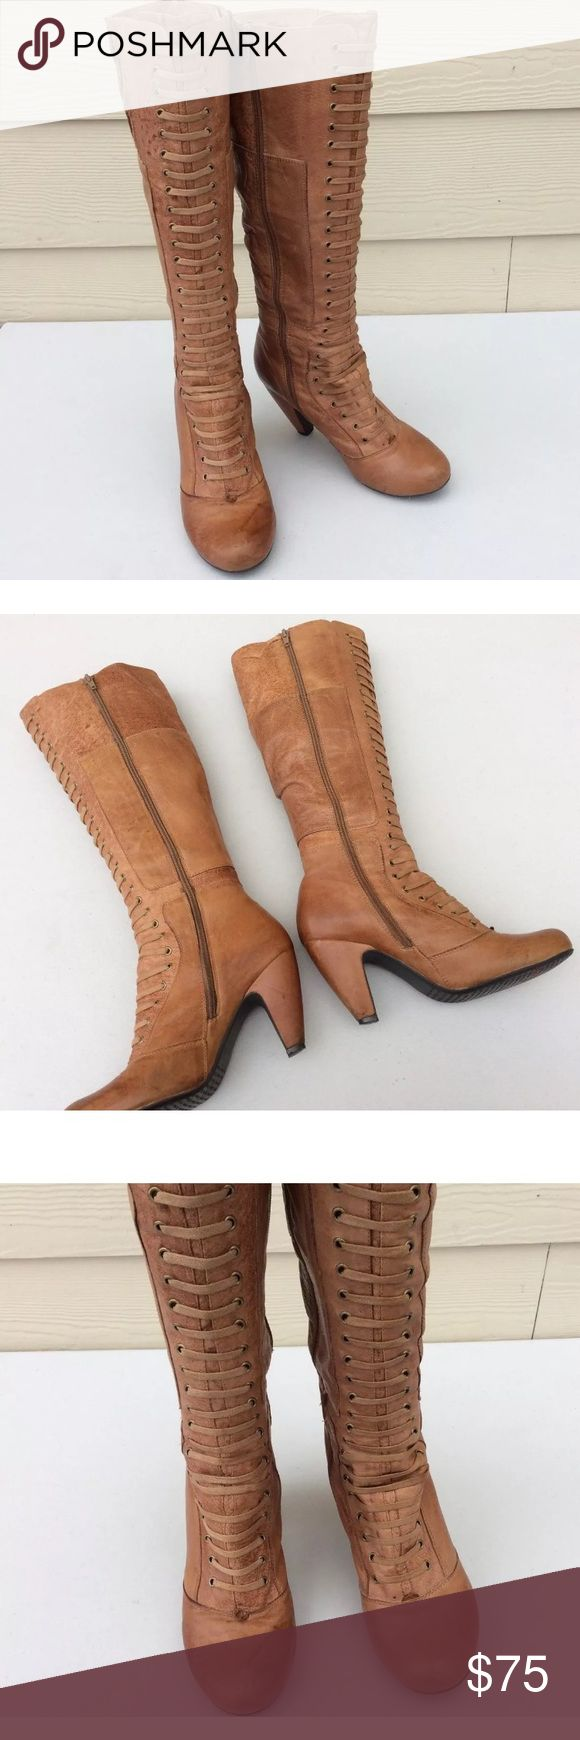 Miz Mooz Tan Knee High Boots Sz 8 Please review pictures carefully! Open to offers Miz Mooz Shoes Over the Knee Boots